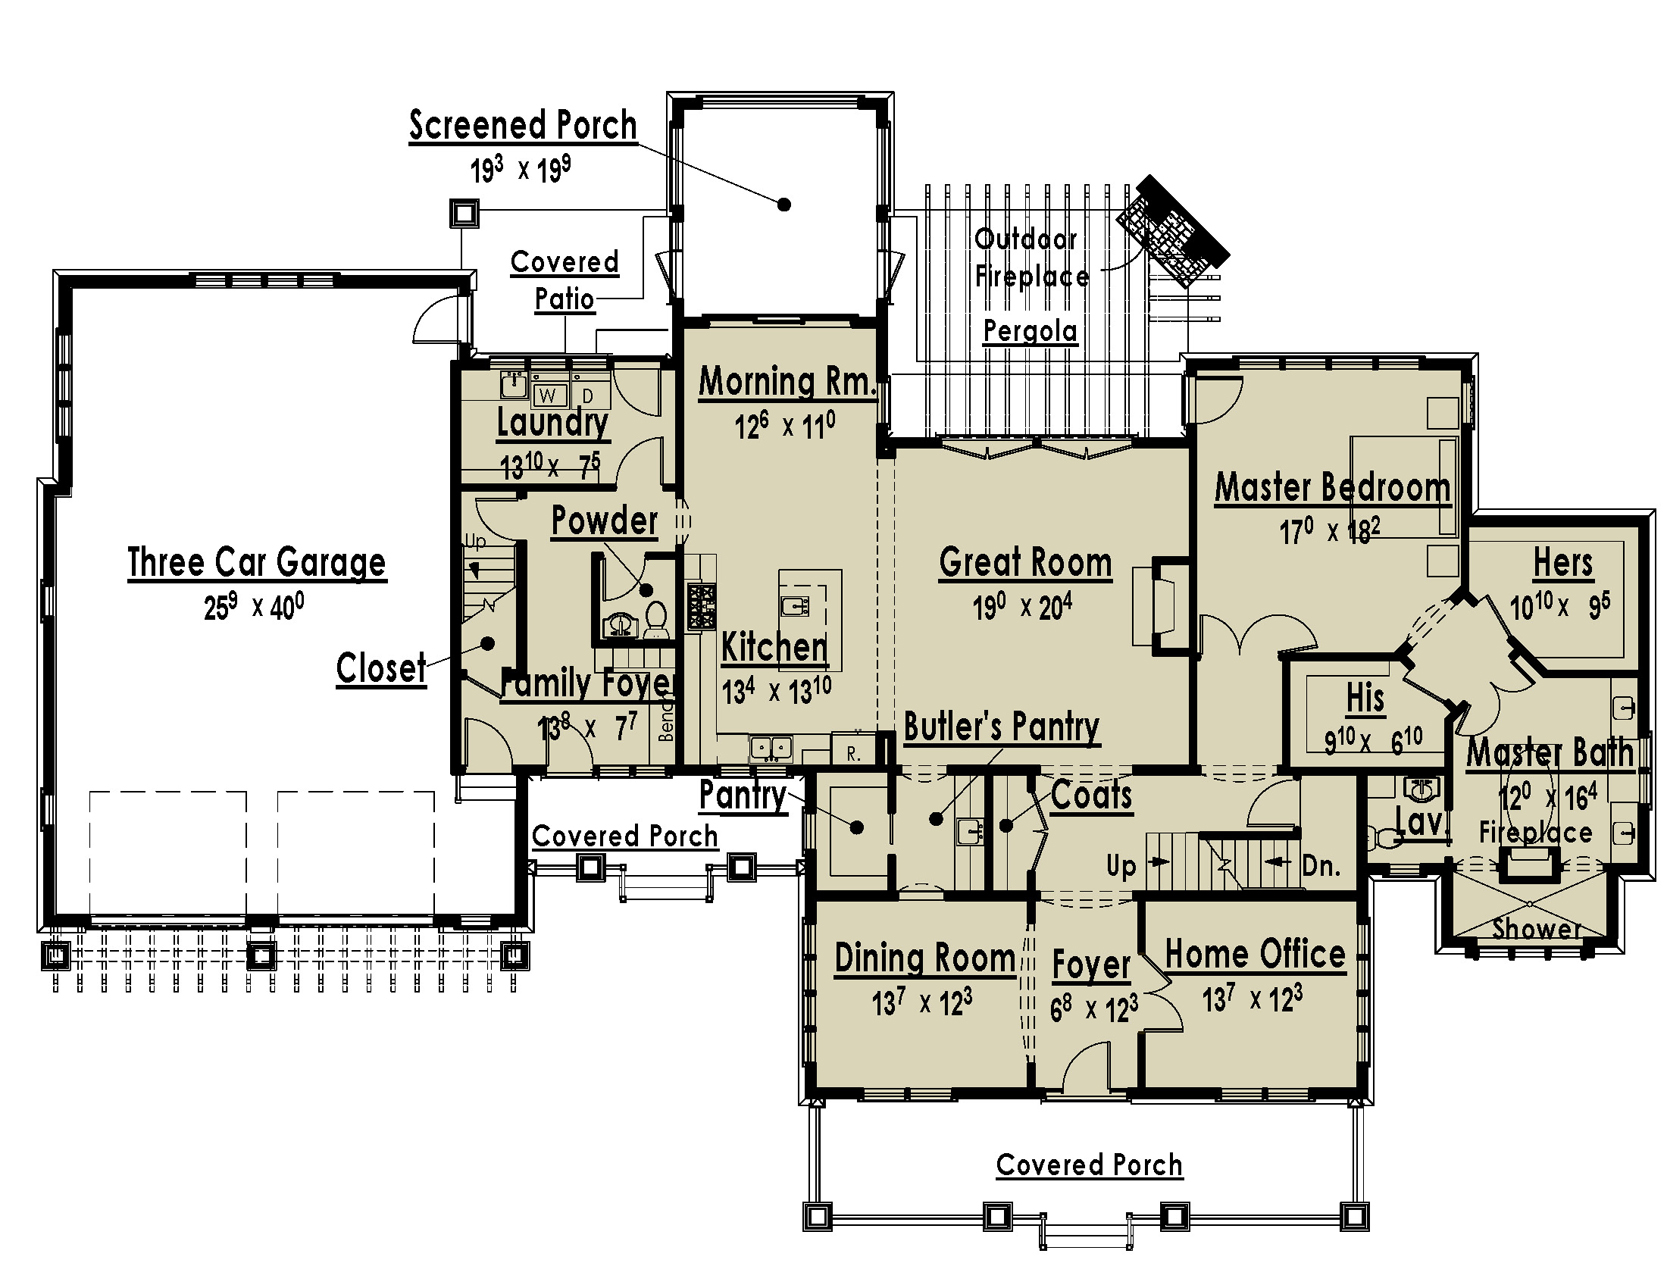 2 story master bedroom suite floor plan trend home house plans two master suites one story floor plans for